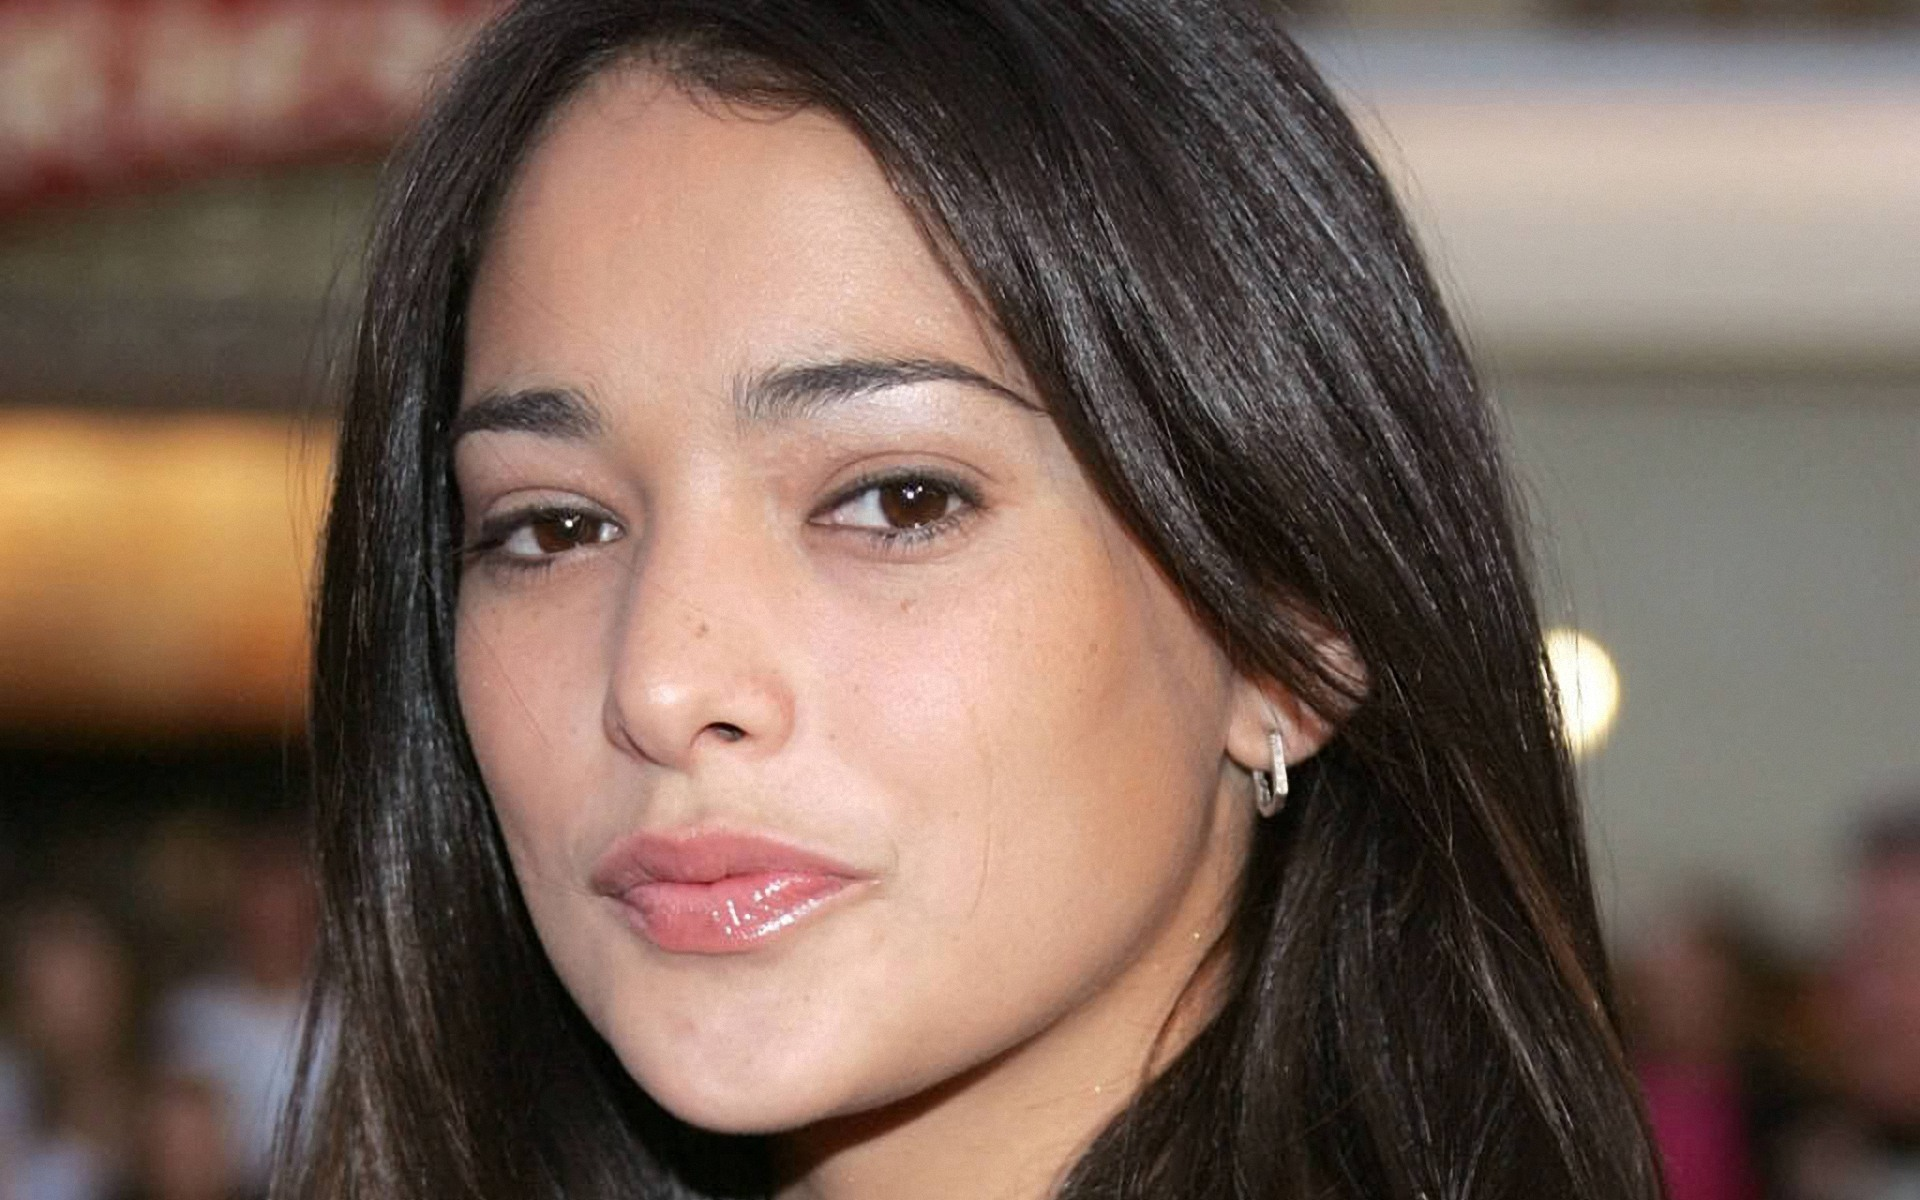 pretty natalie martinez images for smart phone